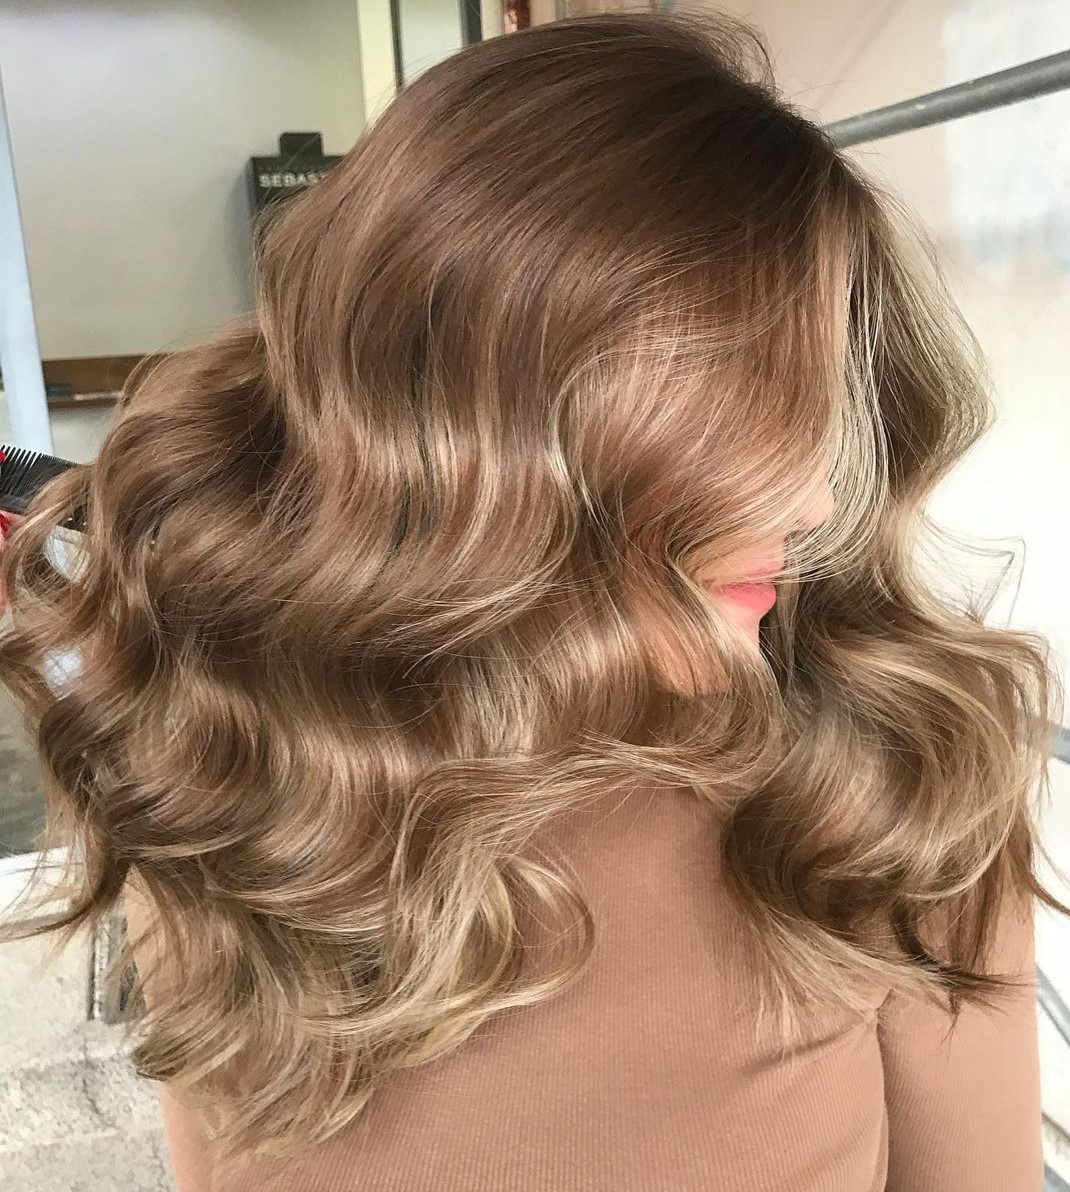 Feminine Light Brown Waves with Highlights